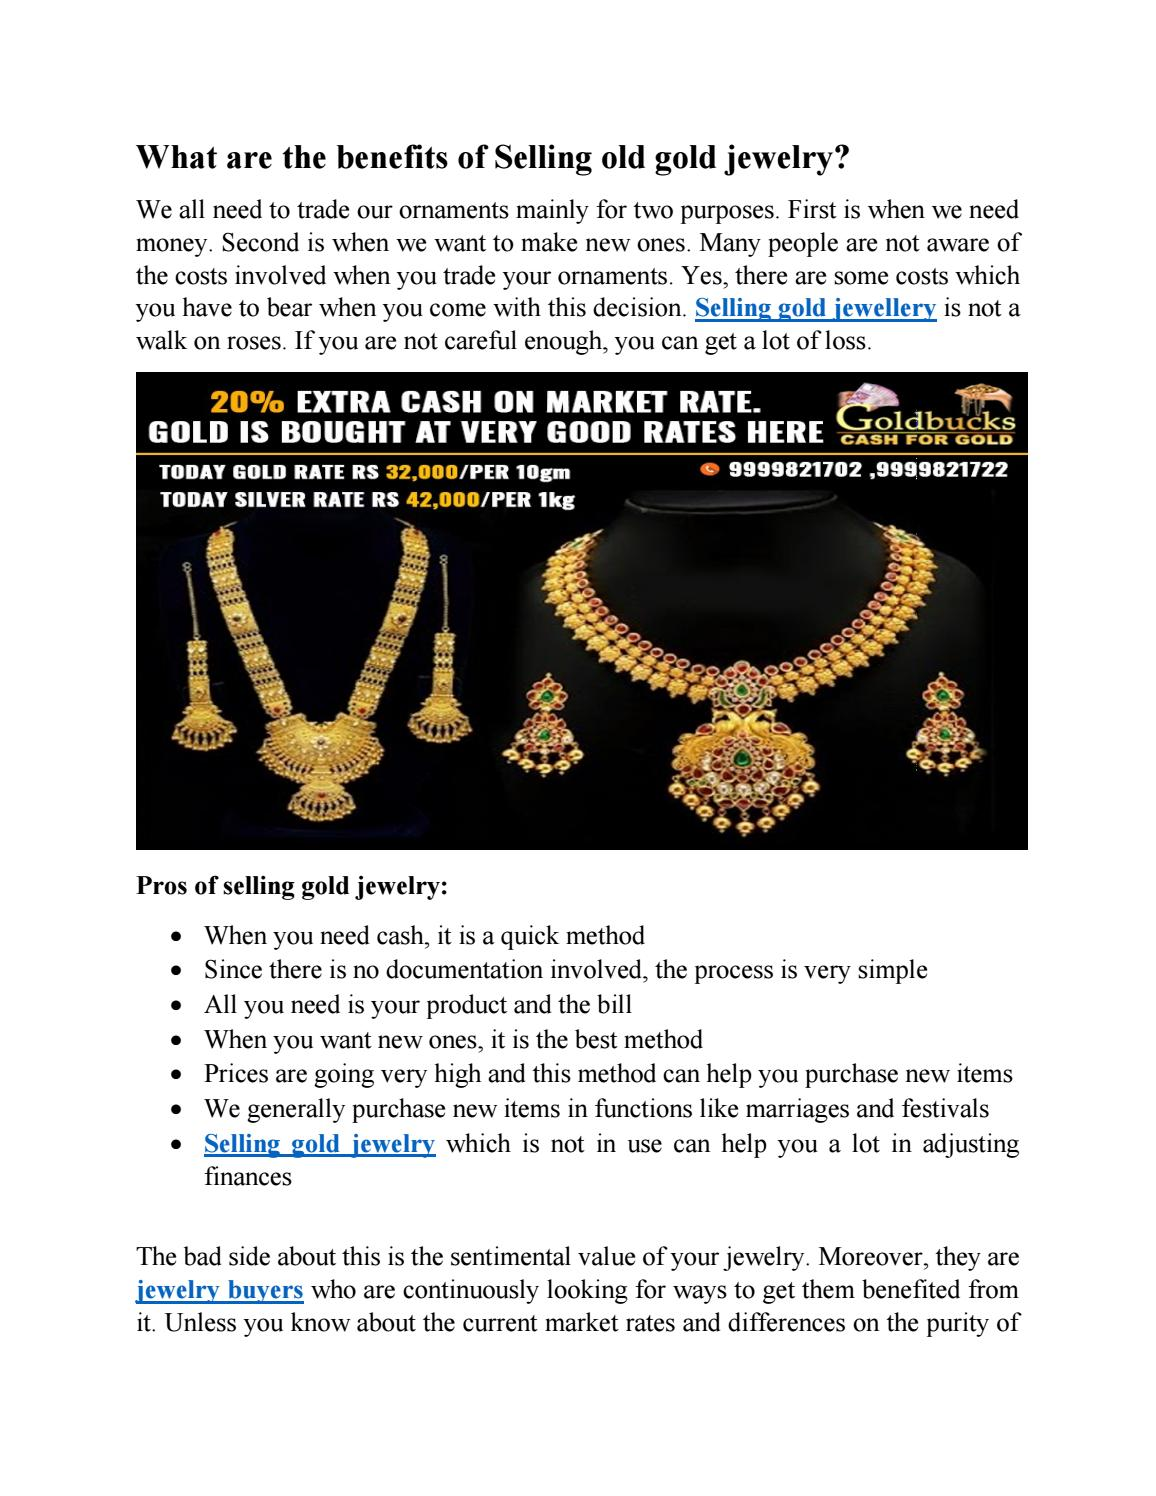 What are the benefits of Selling old gold jewelry? by Gold